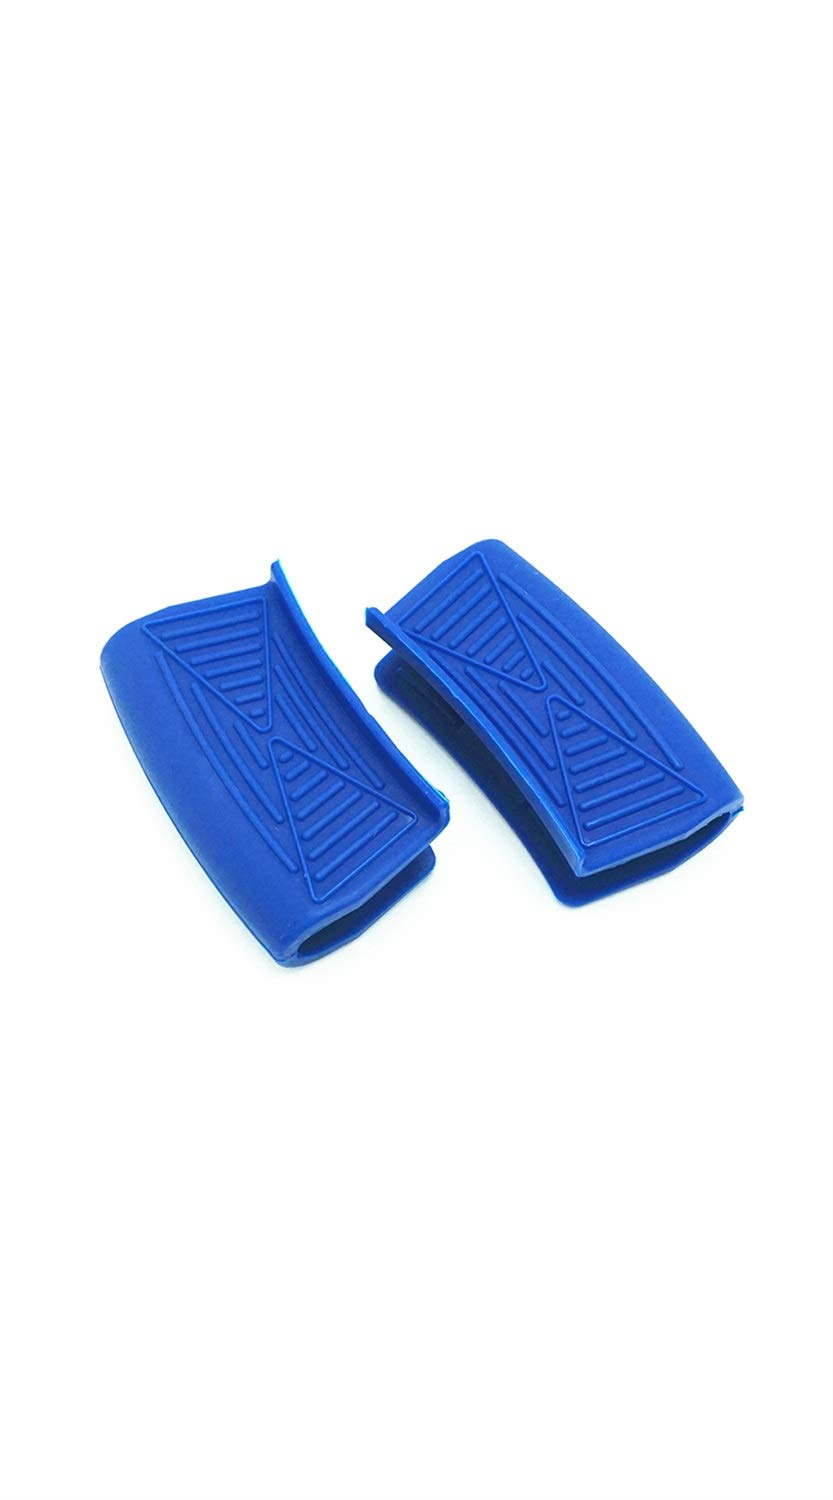 TYZP Silicone Hot Pot Handle Cover Heat Resist Insulation Pot Pan Handle Mini Non-Slip Pot Holder Grip (Color : Navy Blue) by TYZP